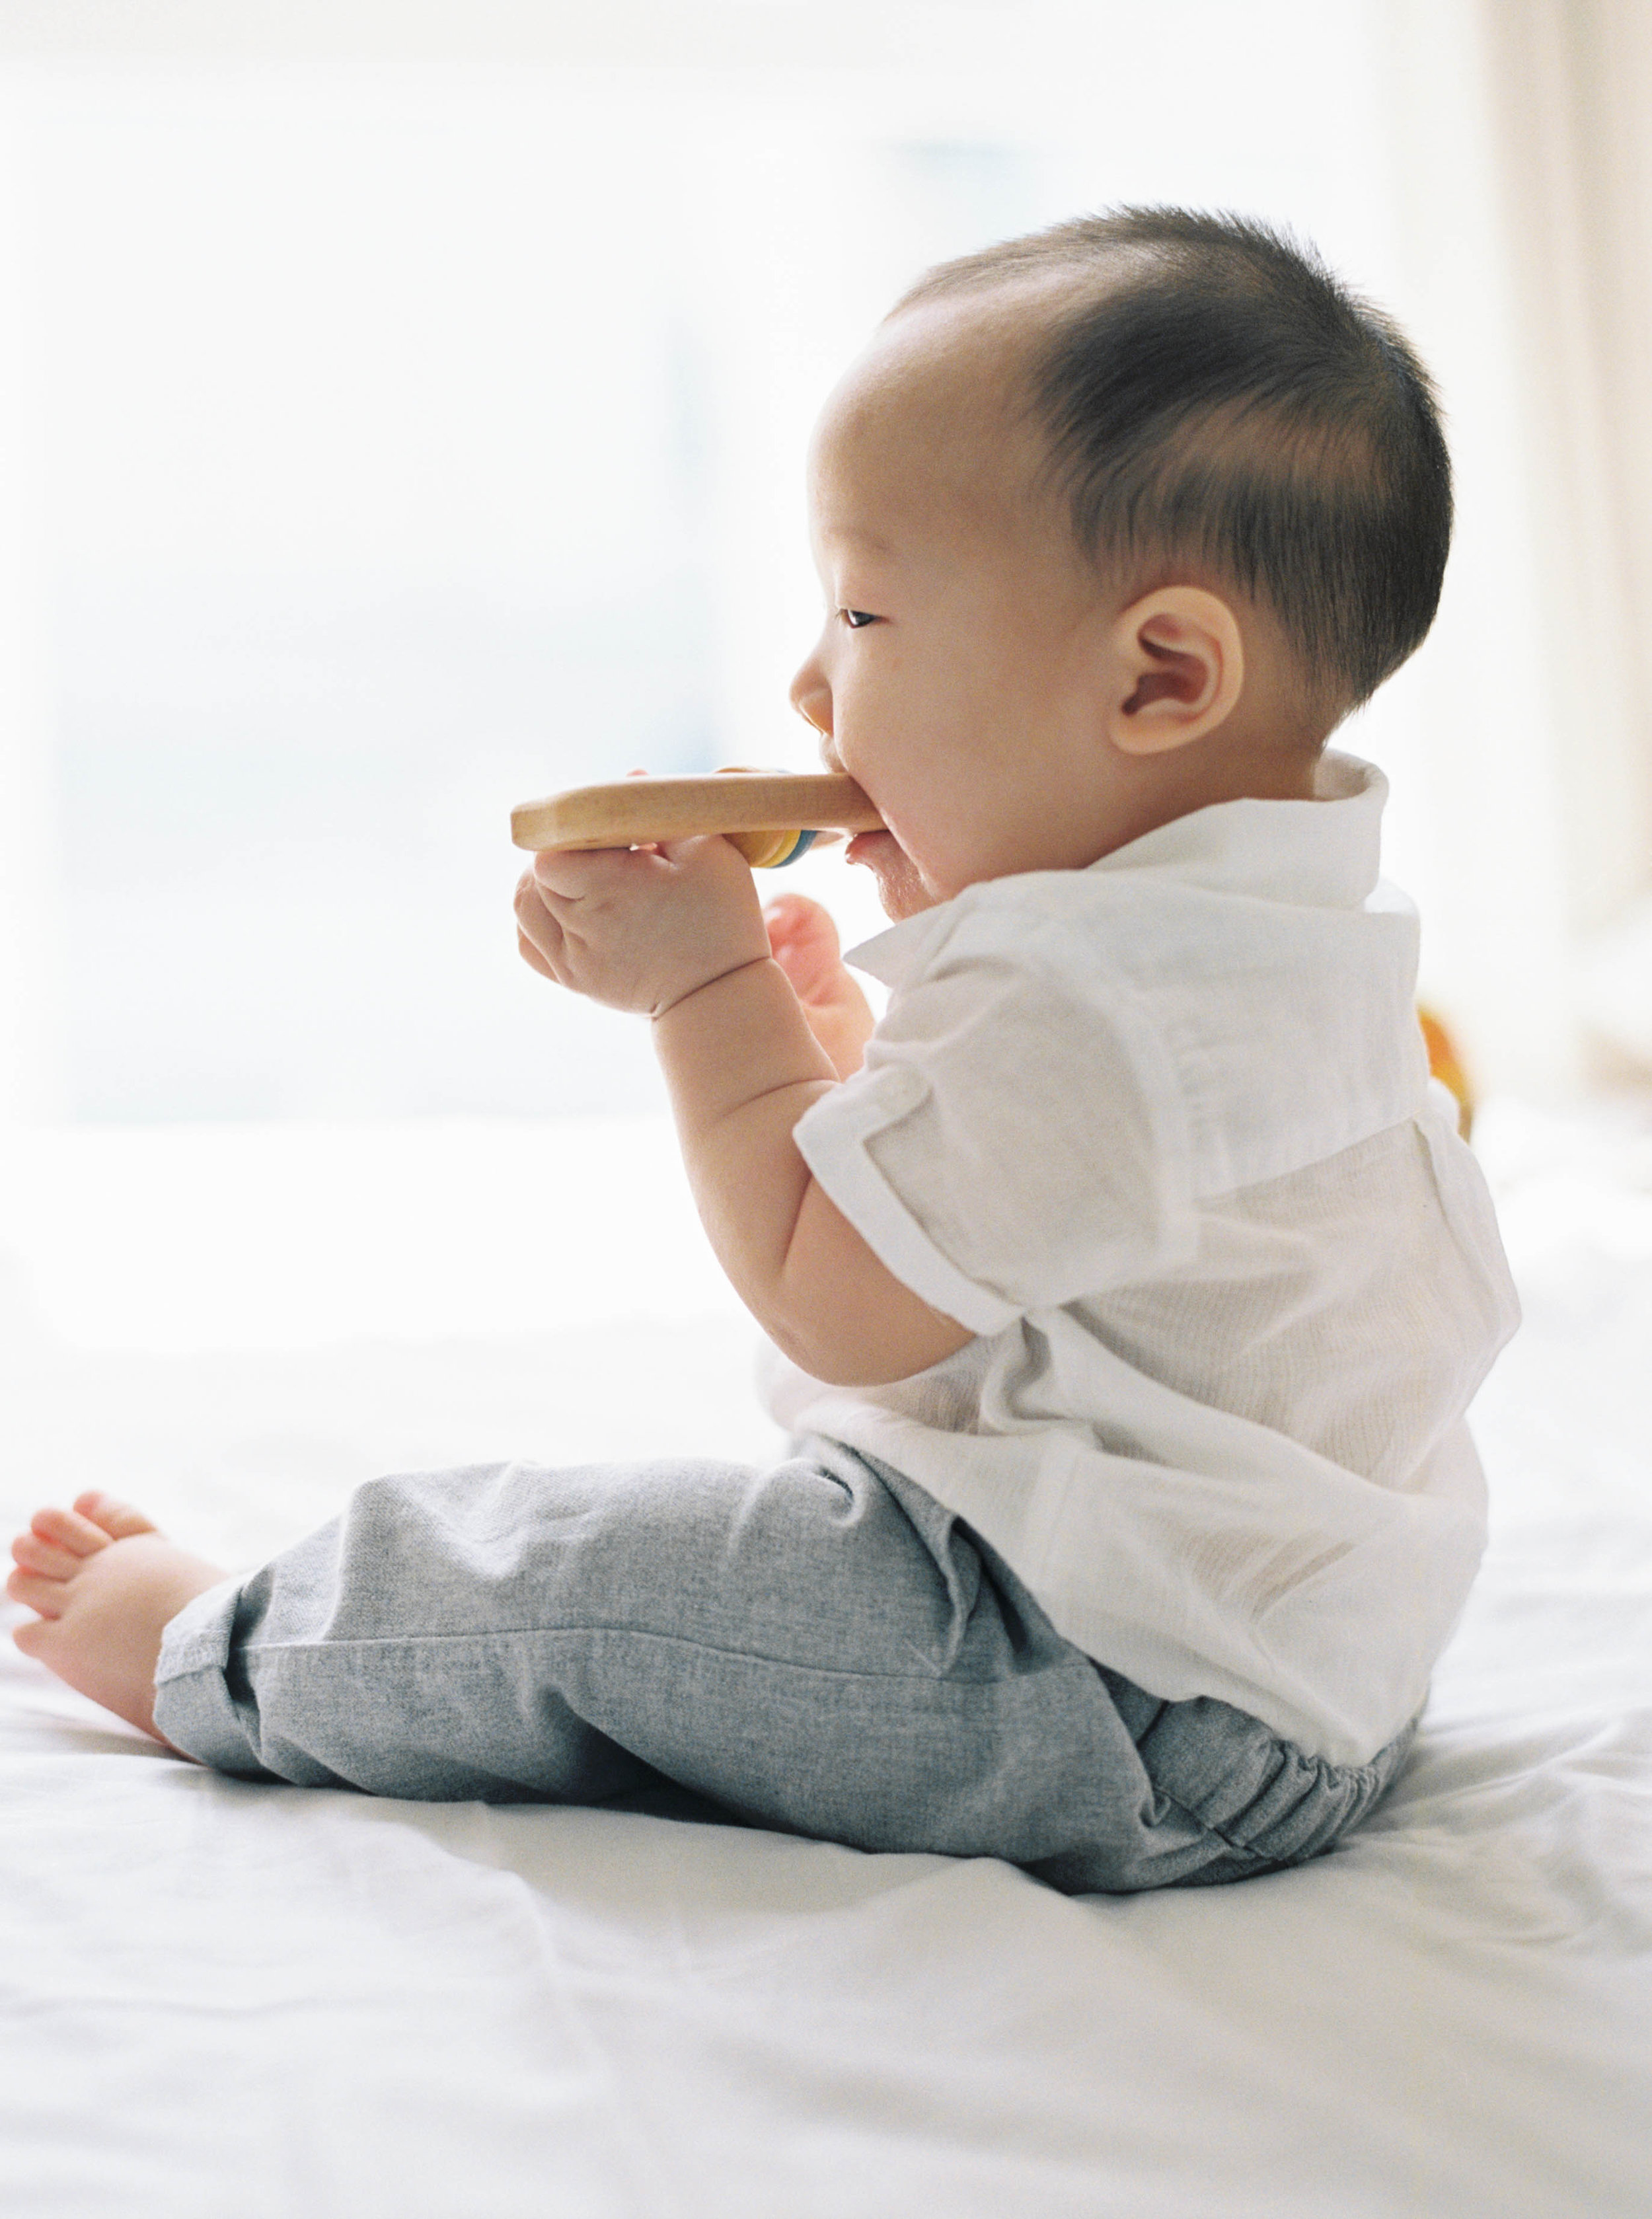 Cody-At Home-Simple-Baby Photography-8 Months Old-Studio June-Film Photography-Jakarta-39.jpg